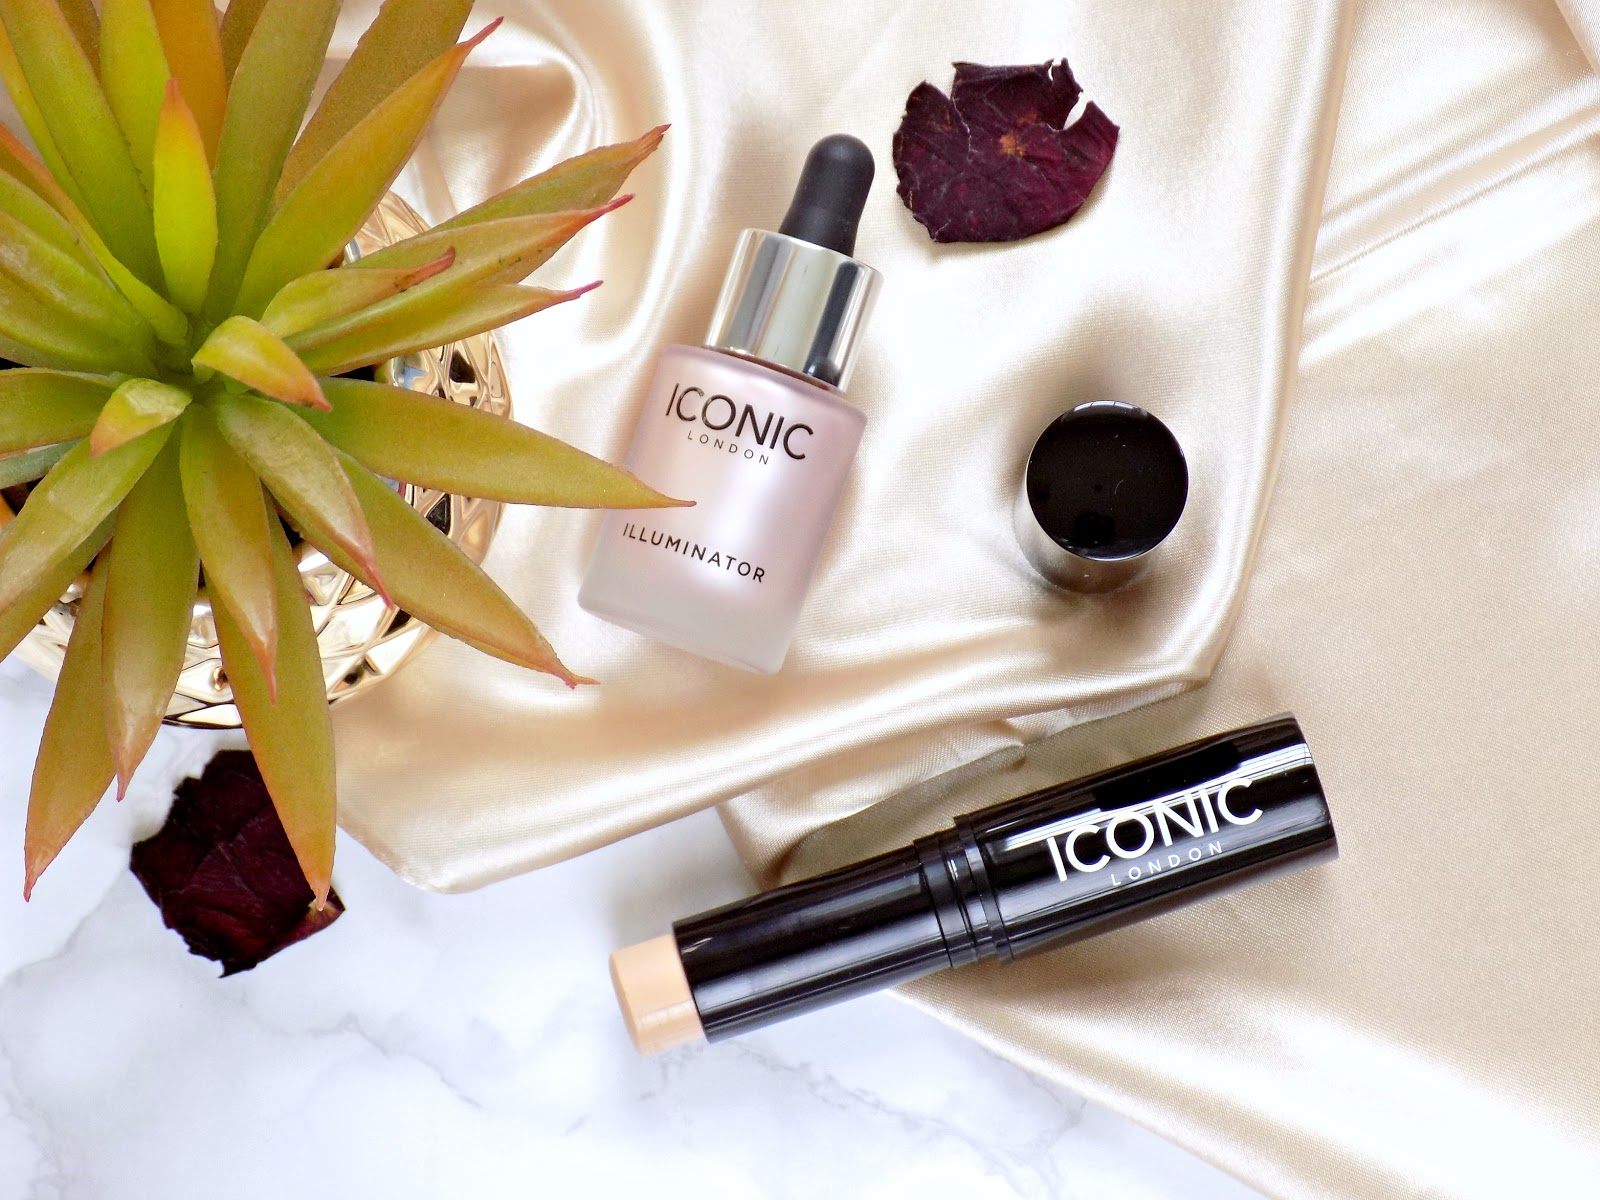 Iconic London Illuminator, Iconic London Pigment Foundation Stick